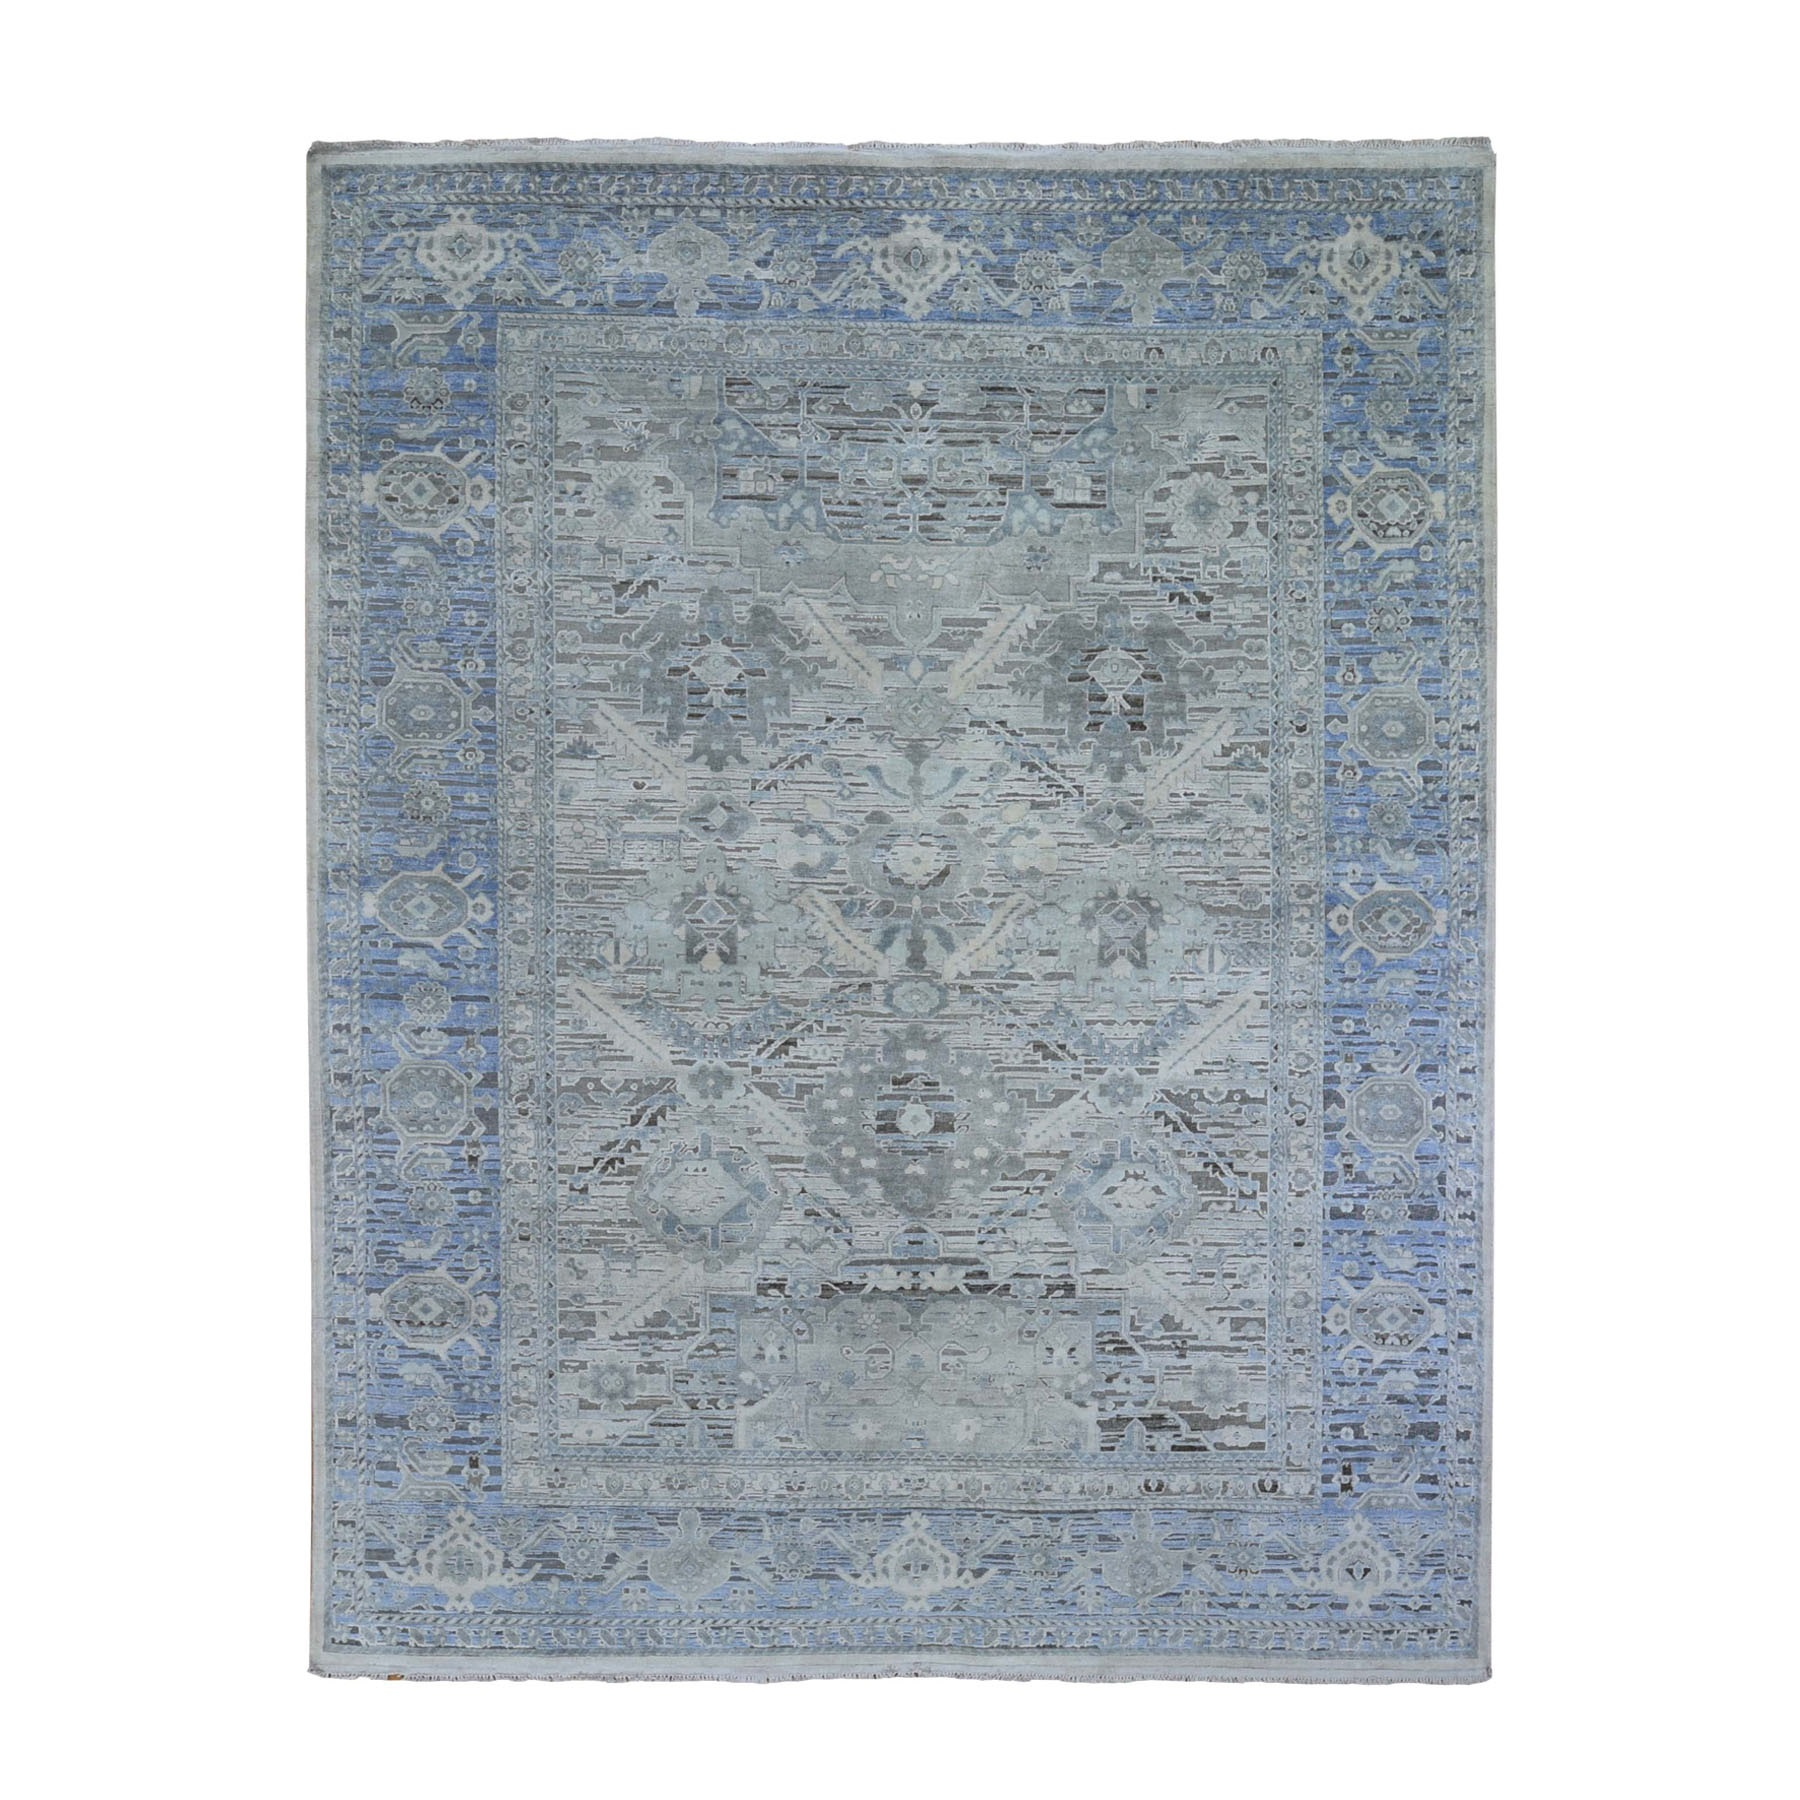 "8'x10'3"" Hand Woven Pure Silk and Textured Wool Oushak with Geometric Motif Oriental Rug"